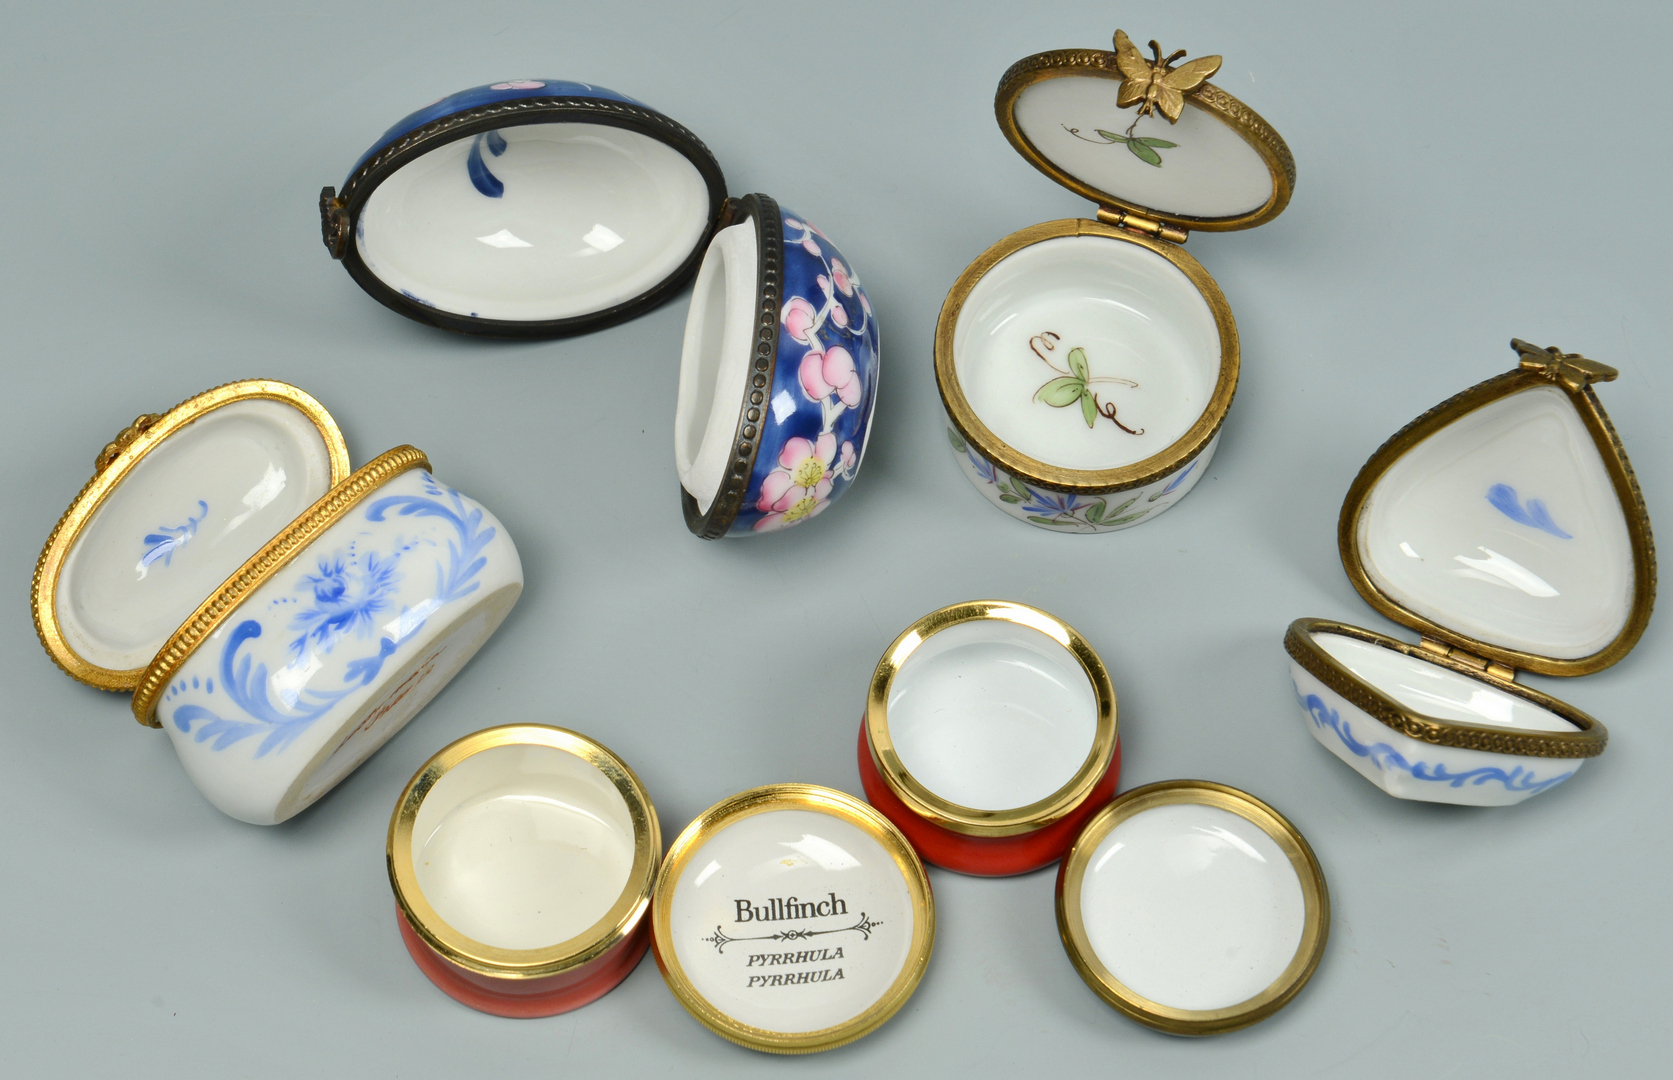 Lot 3088357: 19 enamel boxes incl floral, holiday, love notes